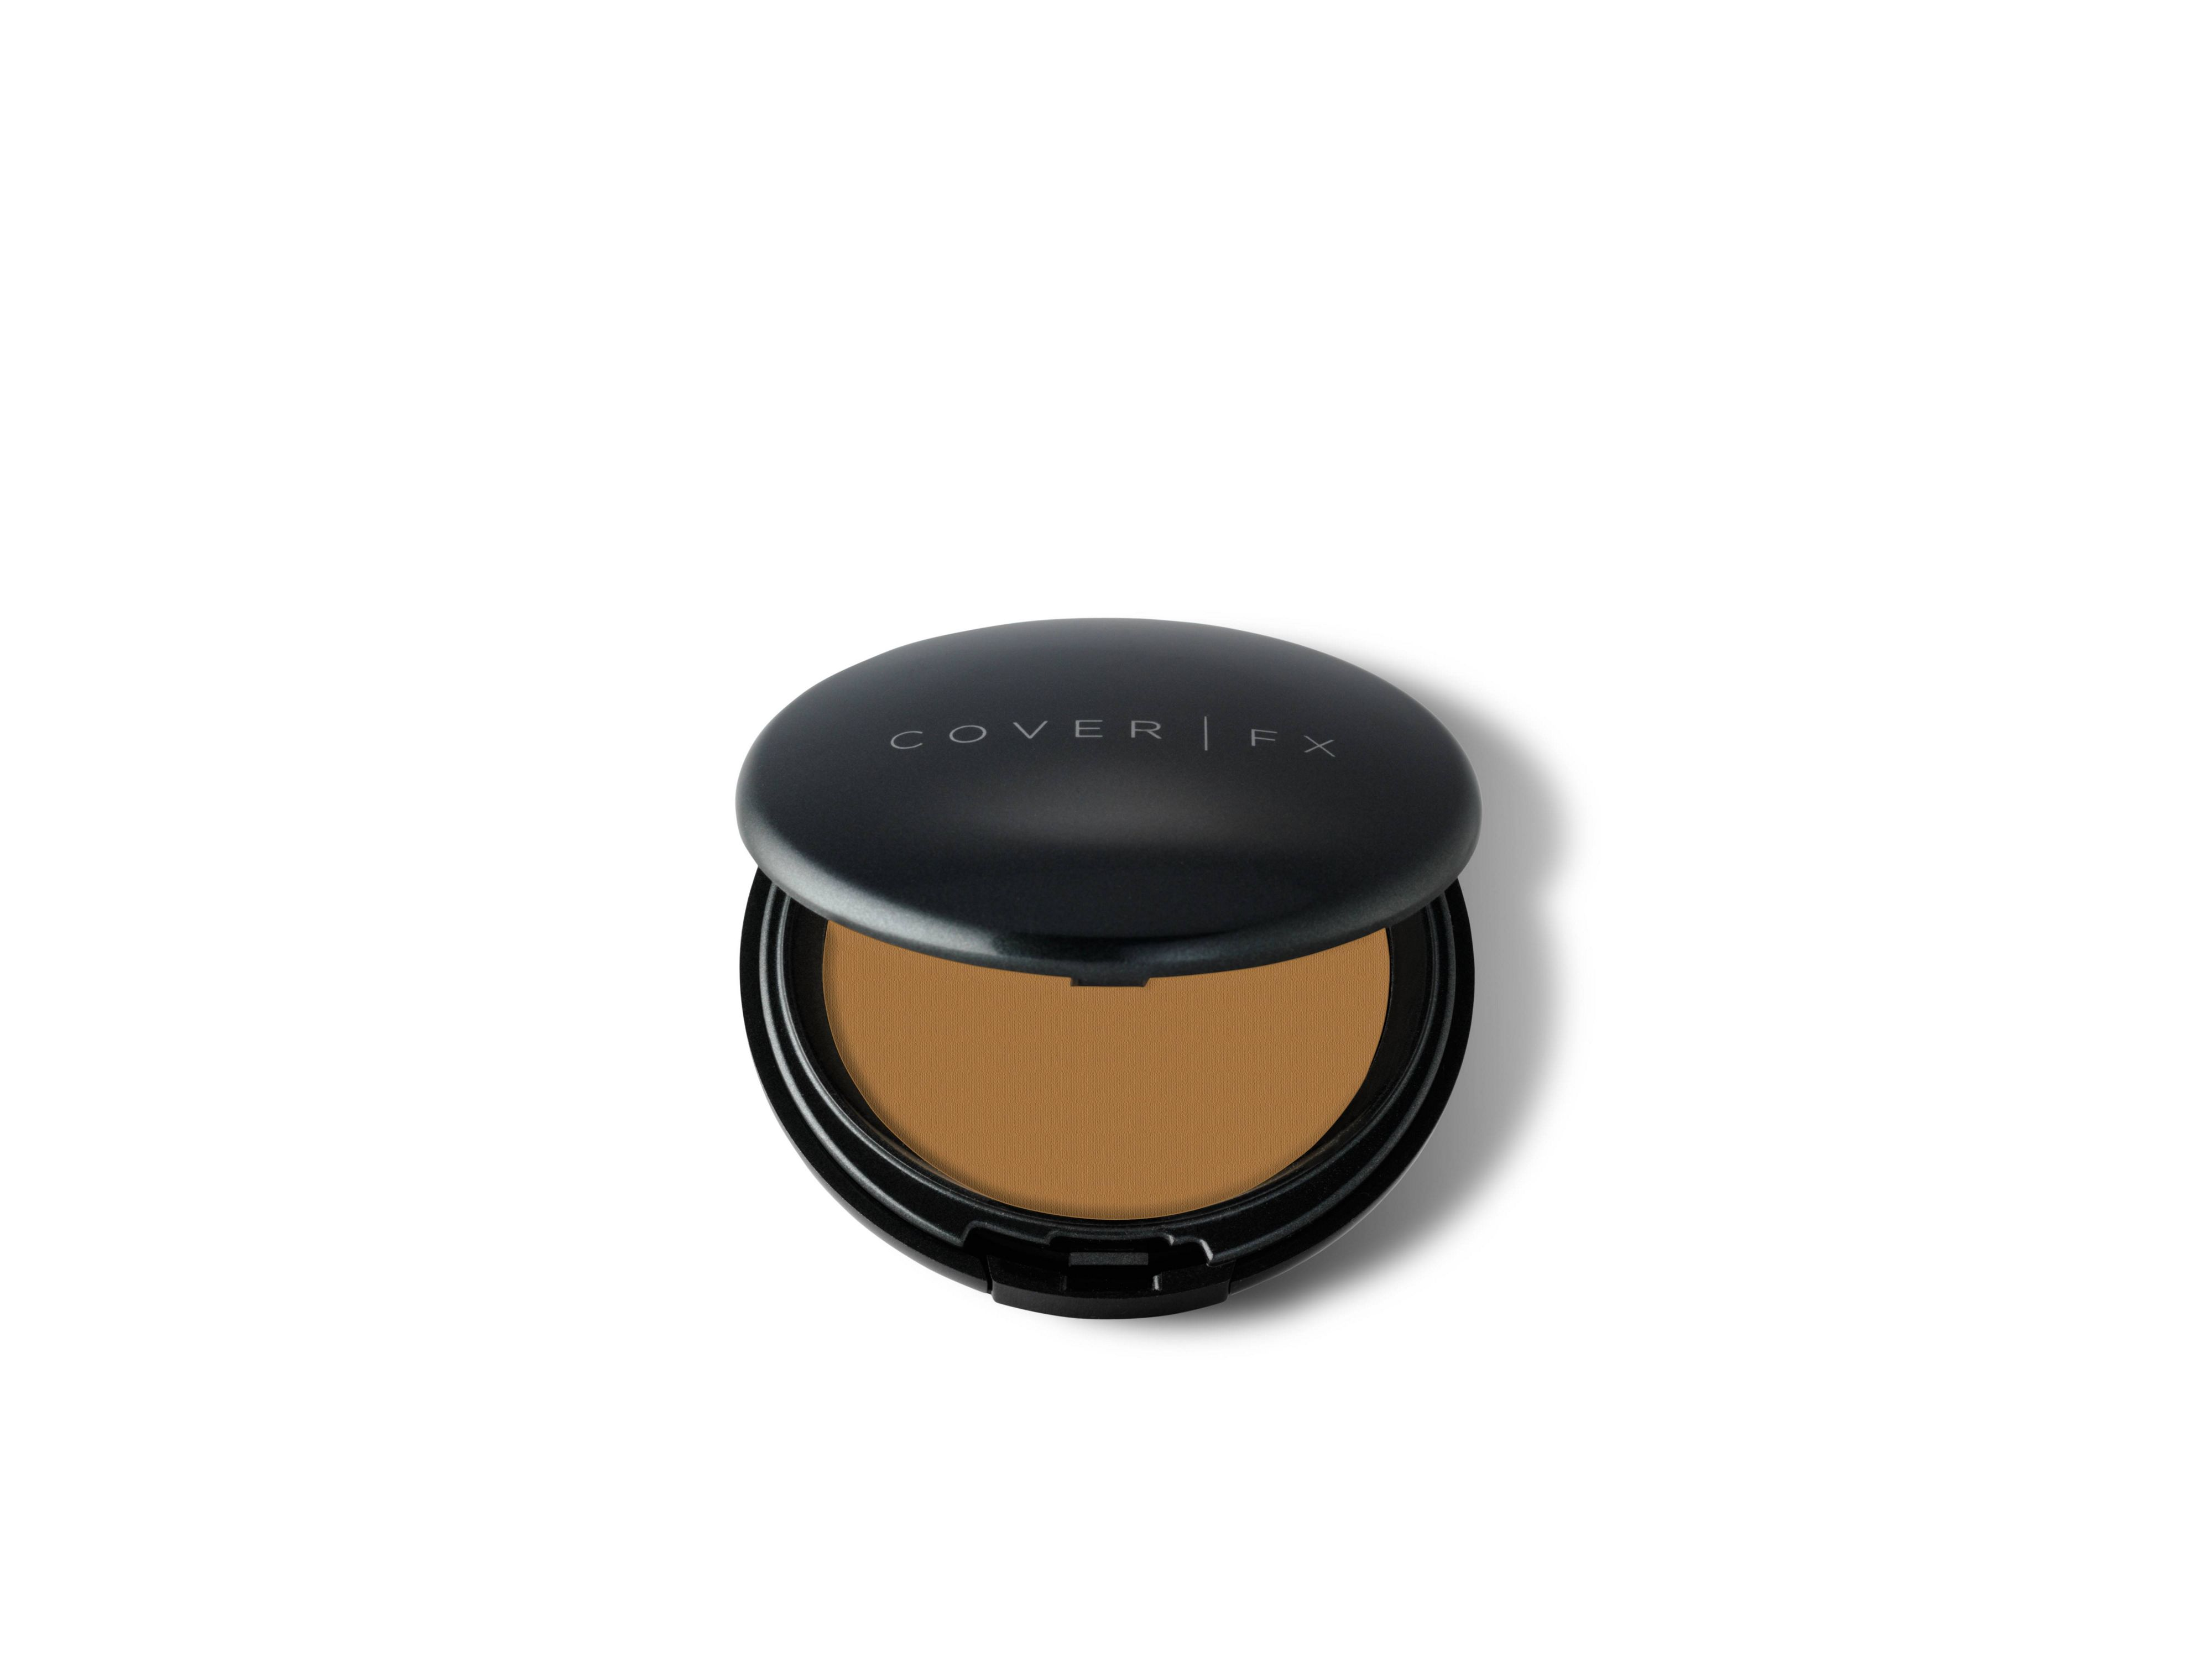 Cover FX Cover FX Pressed Mineral Foundation, G90